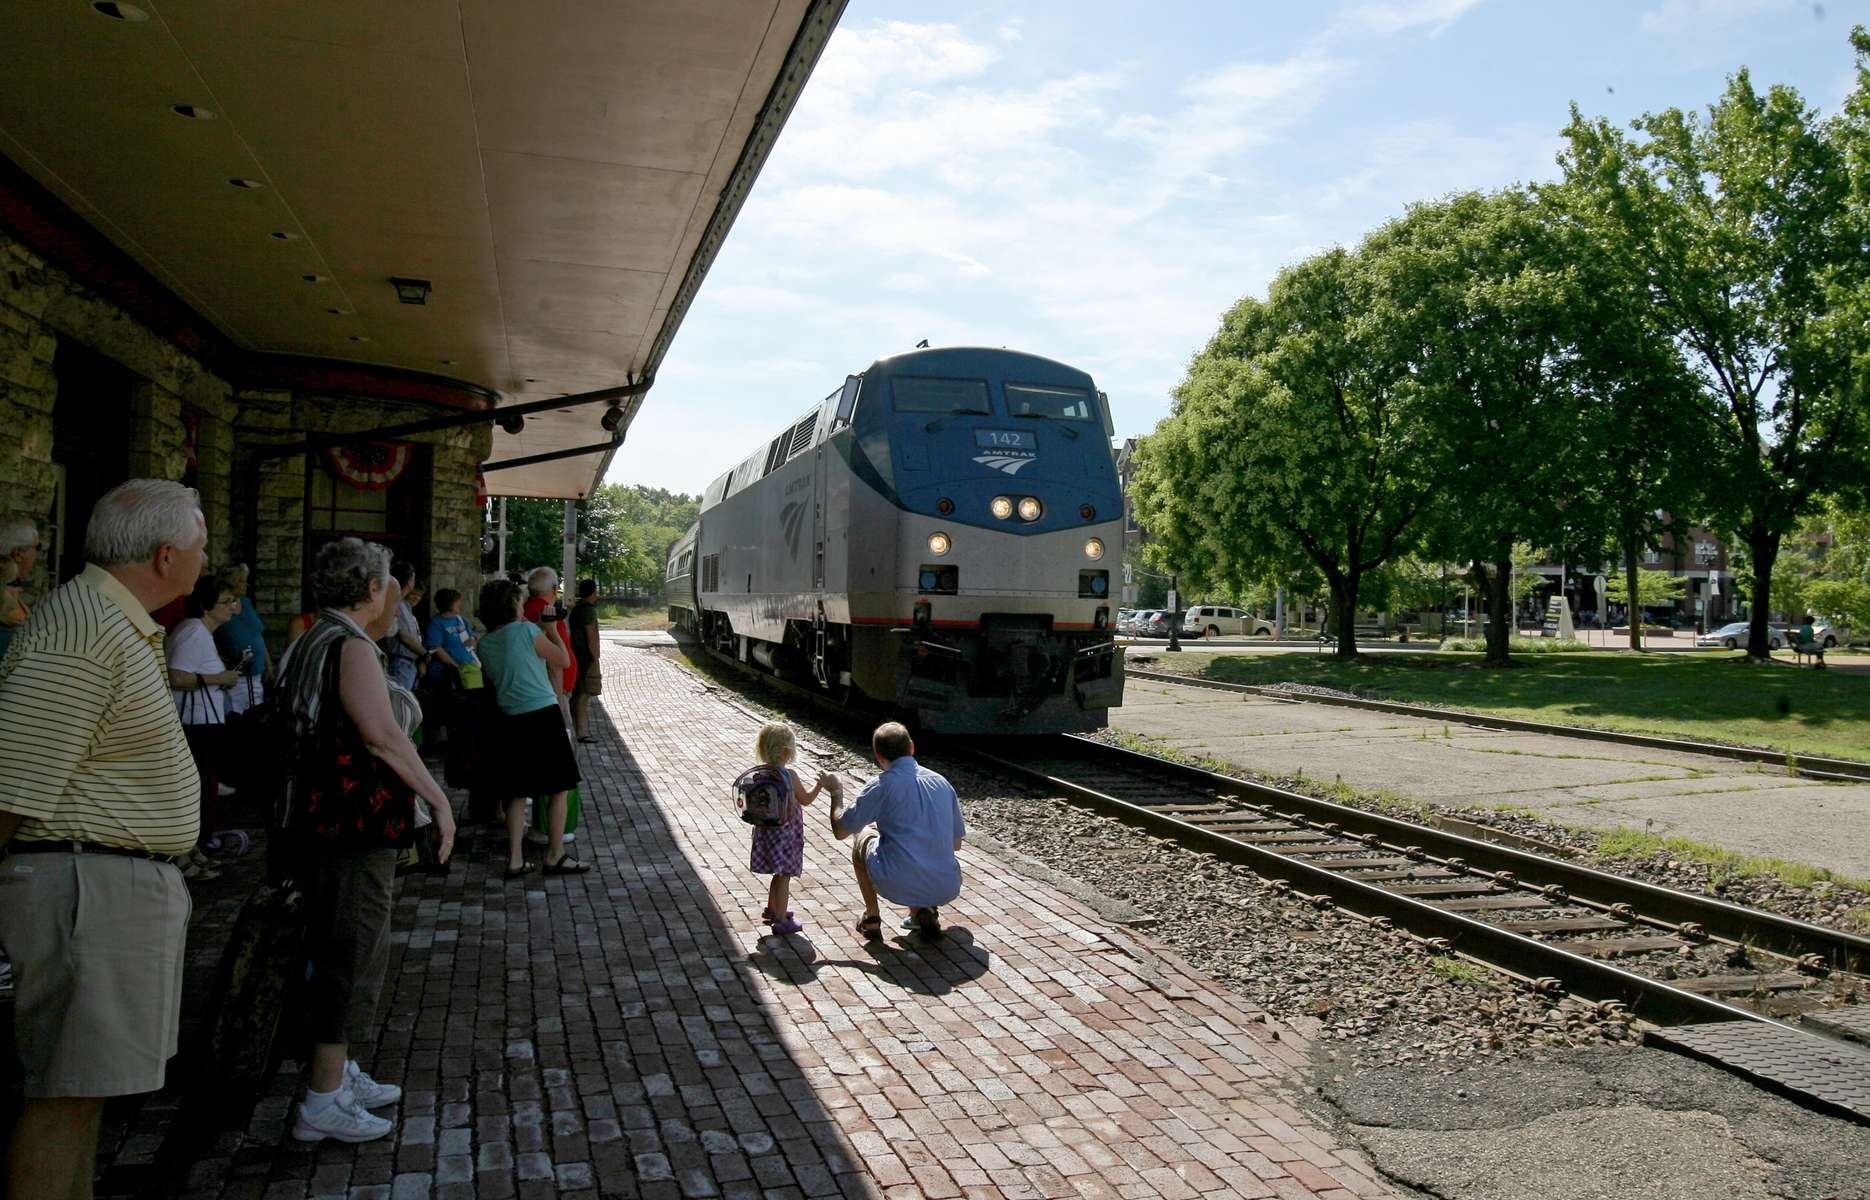 An Amtrak train rolls into the Kirkwood station on it's scheduled run to Kansas City on Saturday, June 23, 2012.  The city of Kirkwood fought to keep it's Amtrak station open, arranging for volunteers to staff to station when Amtrak wanted to close it.  Photo By David Carson, dcarson@post-dispatch.com